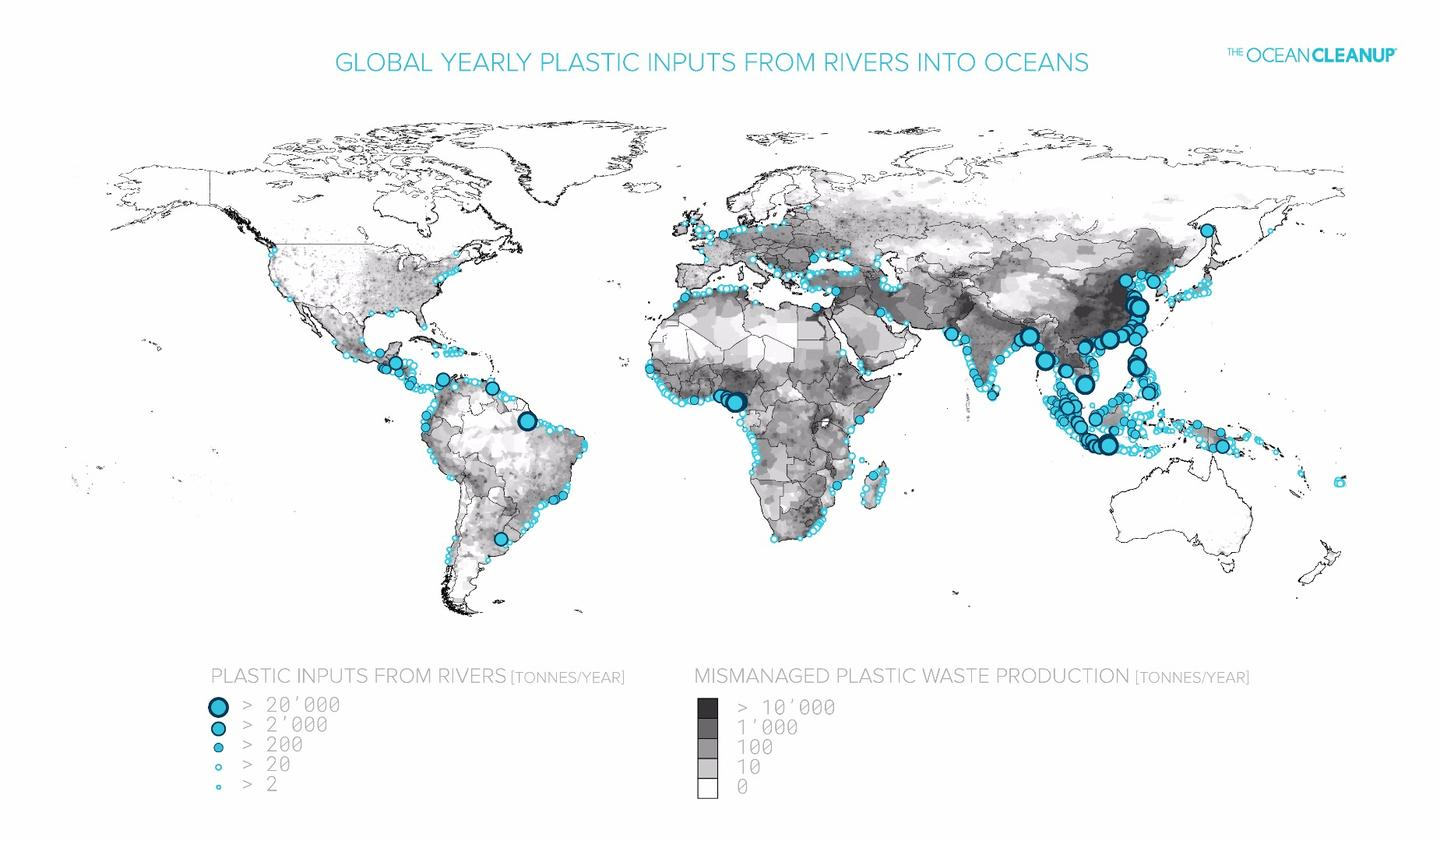 The team has worked its data on river wasteinto an interactive map